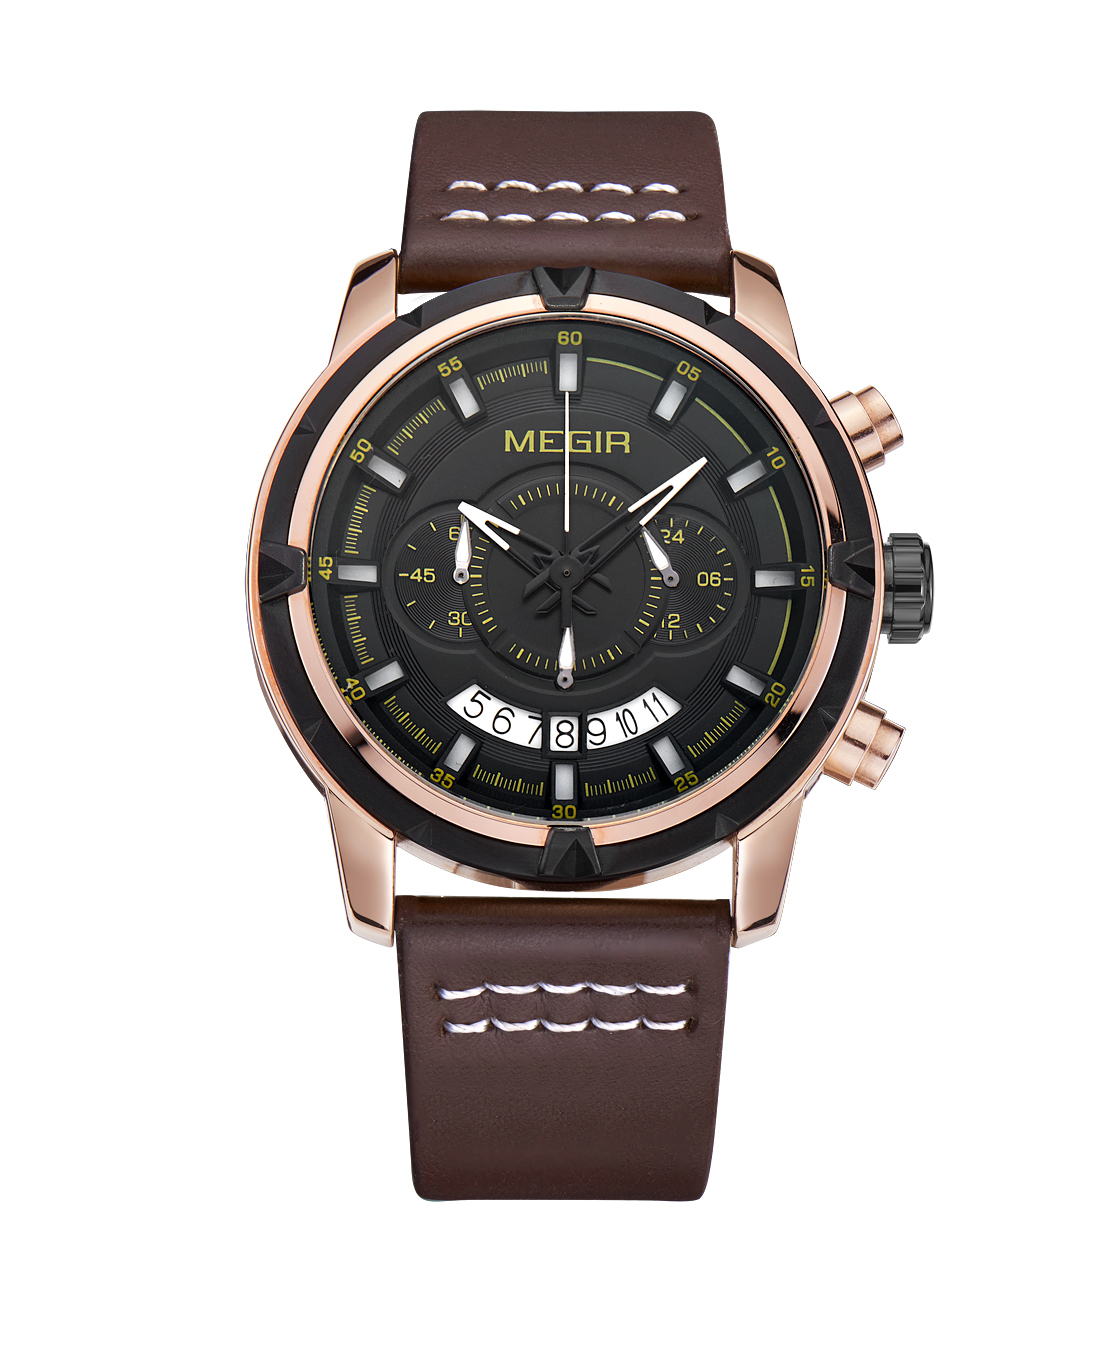 Cosmo Megir Watches Gold Case Brown Leather (3).jpg